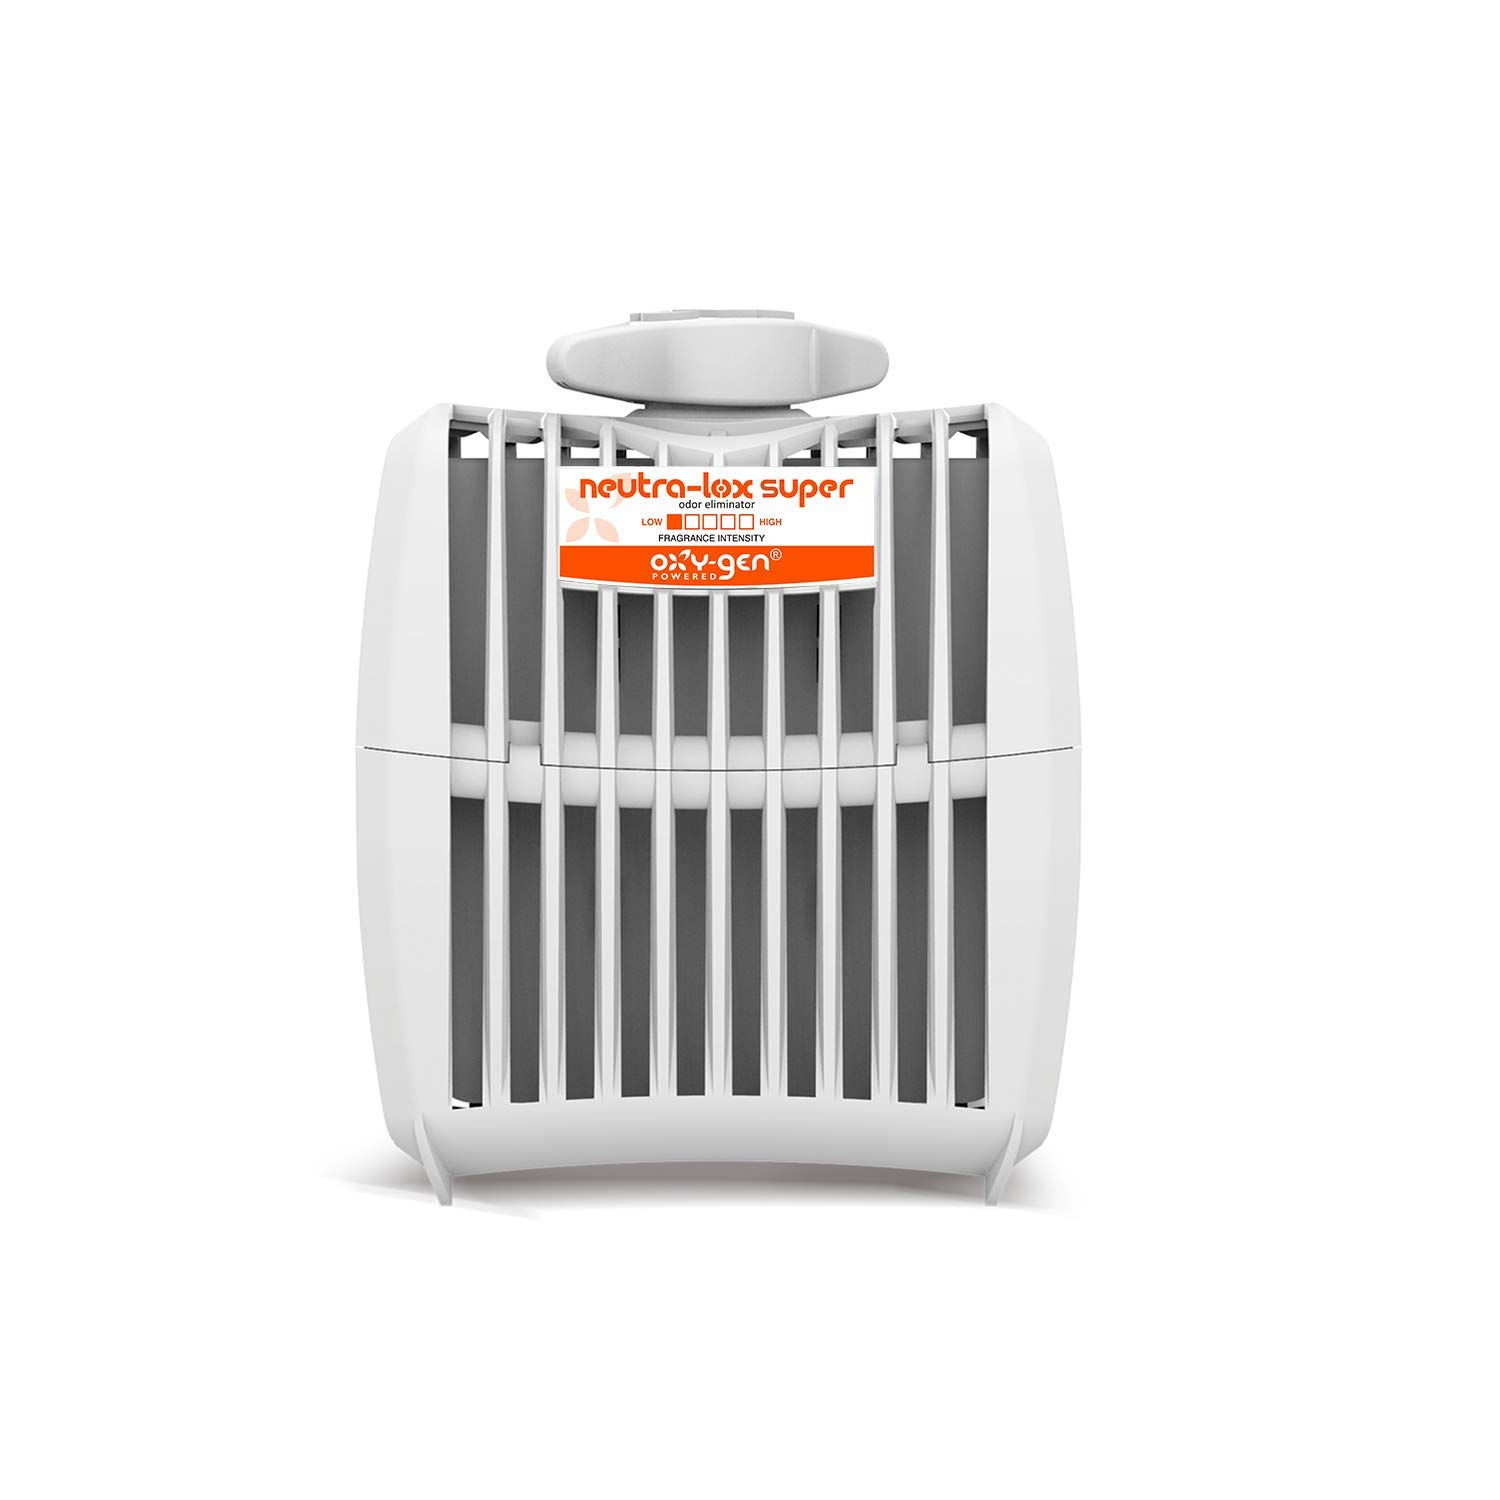 Oxygen-Pro - Neutra-lox Super Low-Fragrance Cartridge For Oxy-Gen Powered Commercial and Residential Air Fresheners and Deodorizers (12)